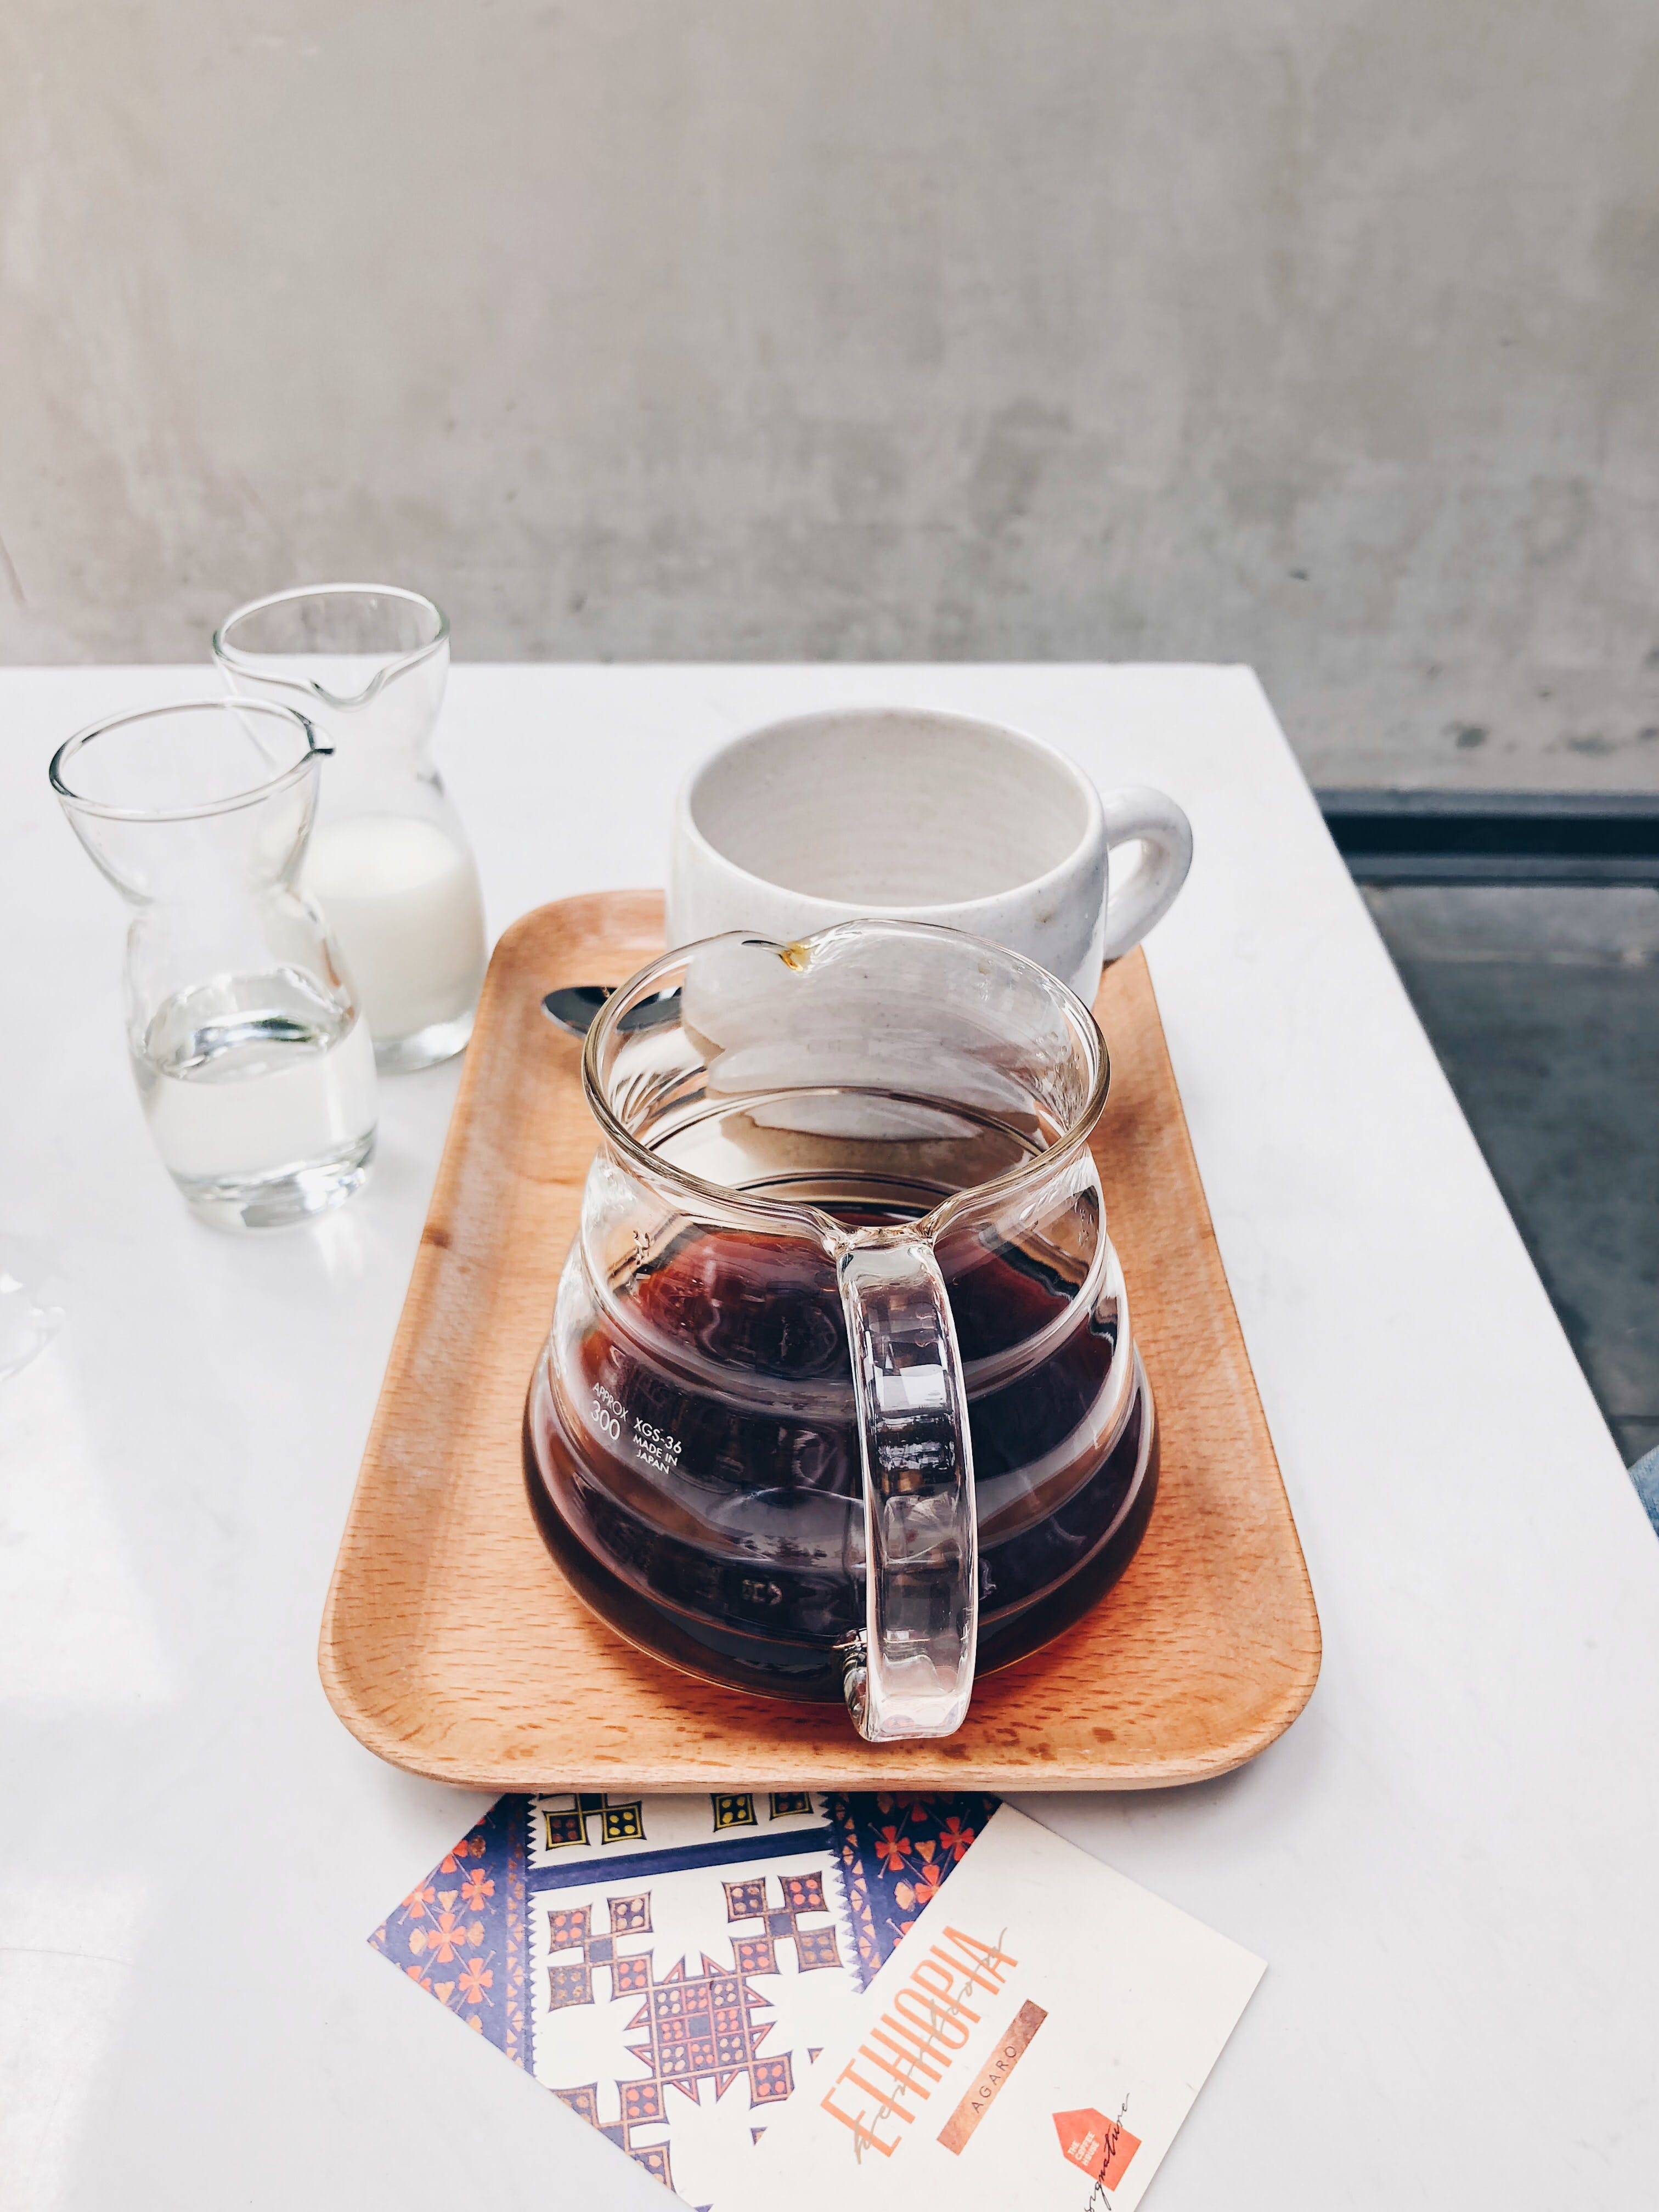 Clear Glass Coffee Pot Near White Mug on Brown Tray